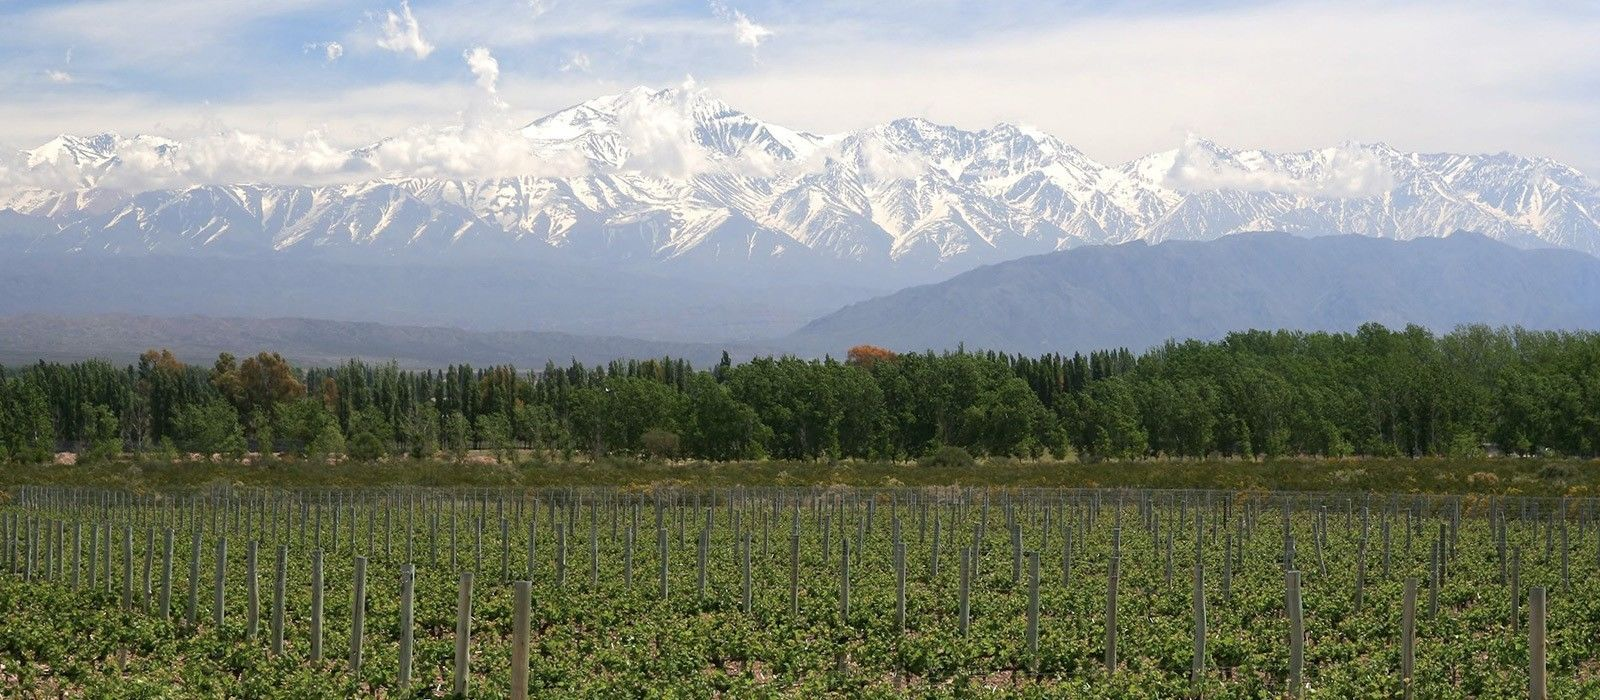 Argentina & Chile: Food and Wine Experience Tour Trip 2